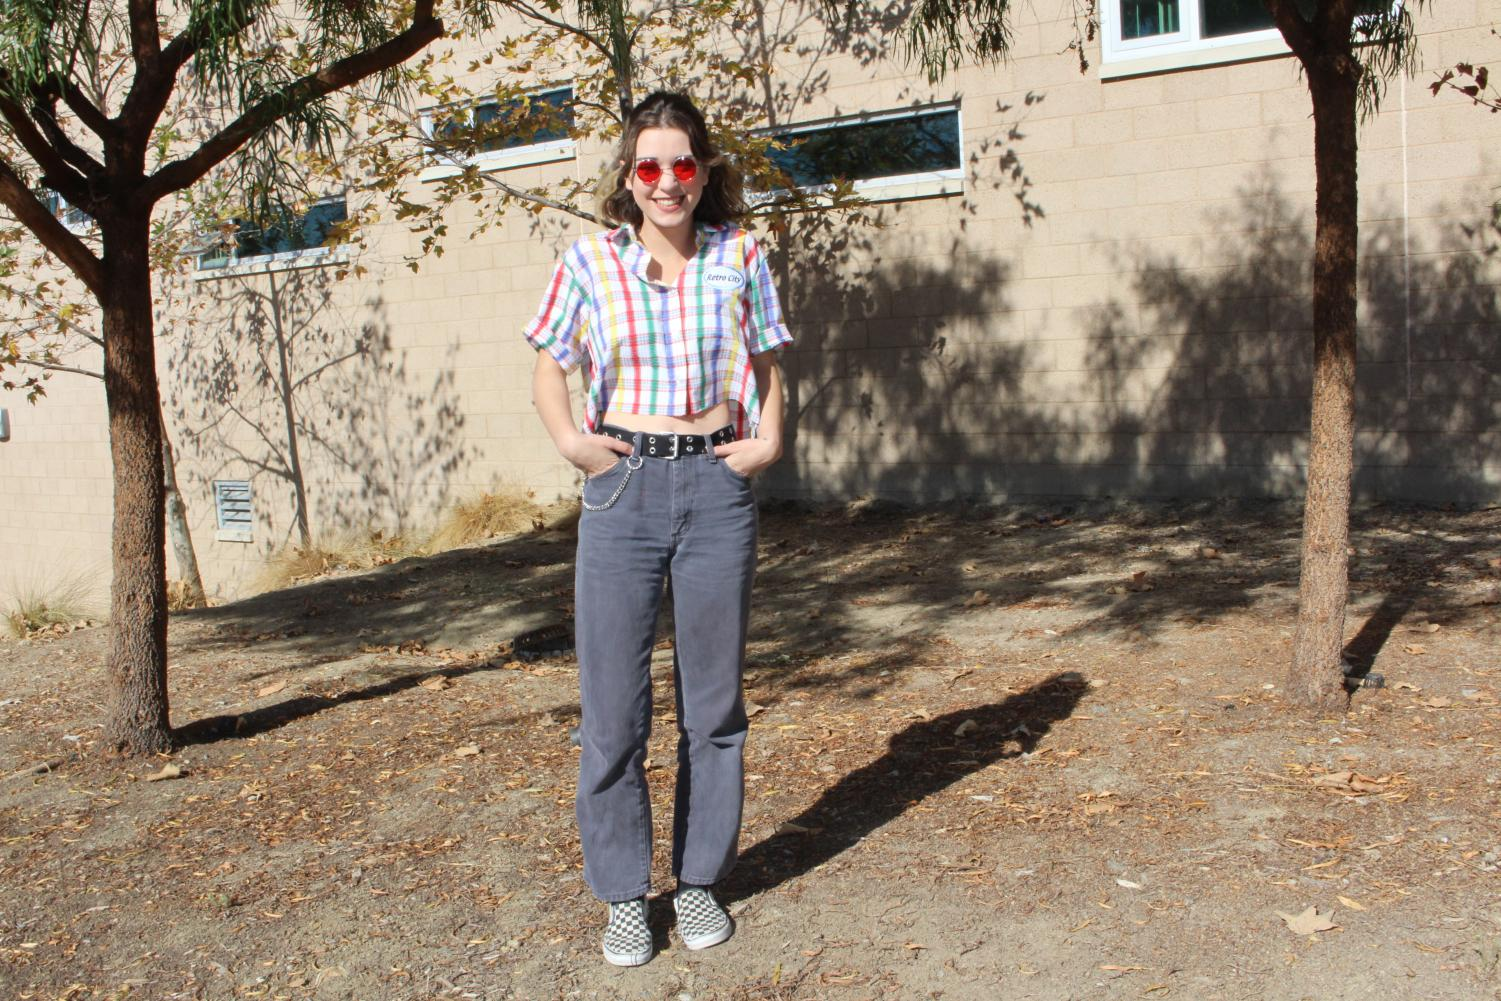 Junior+Skylar+Johnson+rocks+a+retro+colorful+button+down+that+she+ties+with+baggy+faded+blue+jeans.+She+adds+accessories+like+a+big+black+belt%2C+checkered+Vans%2C+red+old+school+glasses+and+a+silver+chain.+She+gets+the+majority+of+her+clothes+from+other+vendors+when+they+swap+back+and+forth+on+Depop.+Check+out+her+shop+on+Depop%21+https%3A%2F%2Fwww.depop.com%2Fscaryskylar